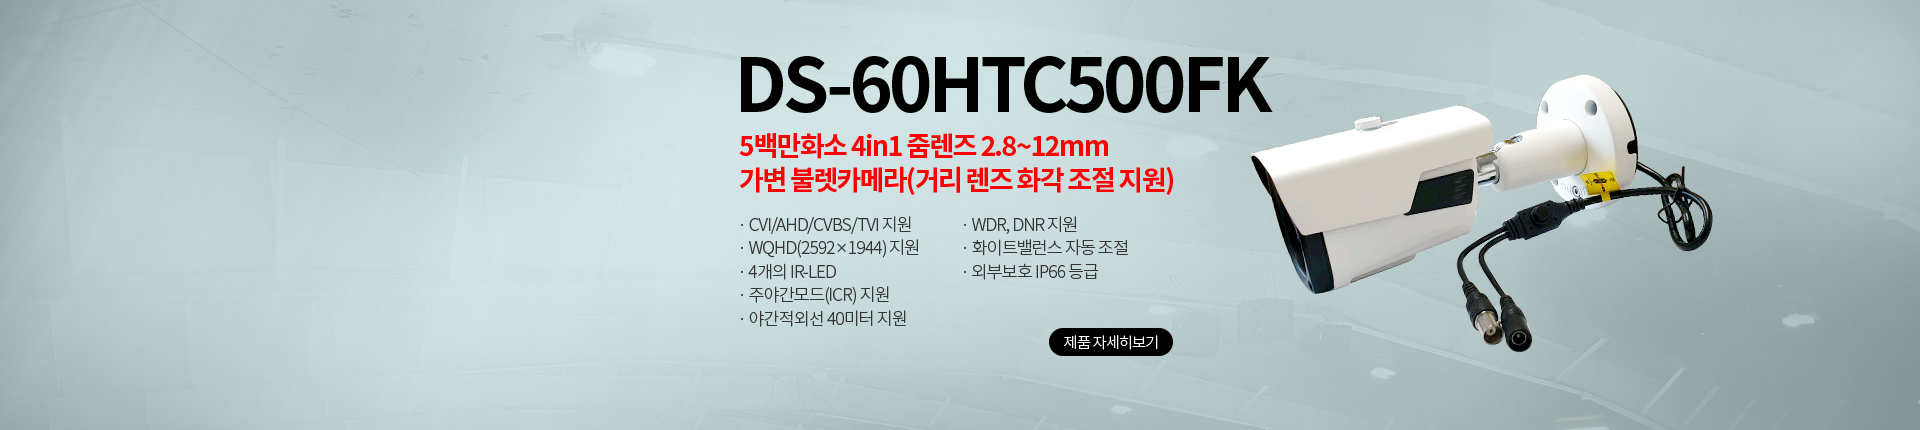 DS-60HTC500FK